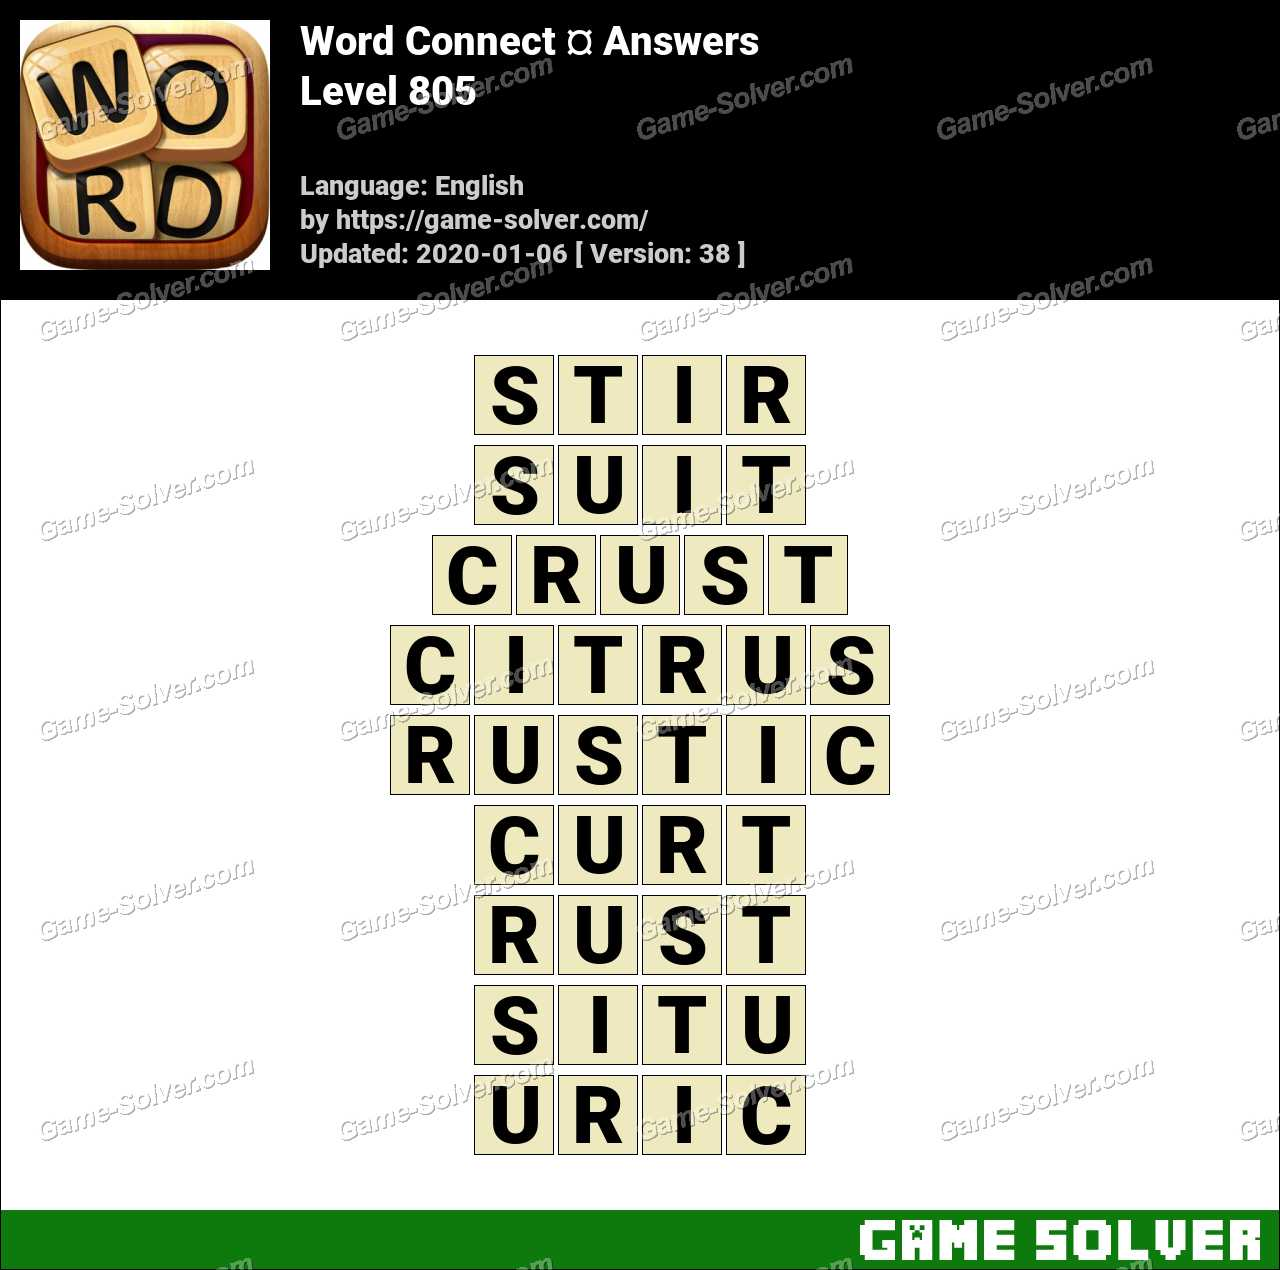 Word Connect Level 805 Answers